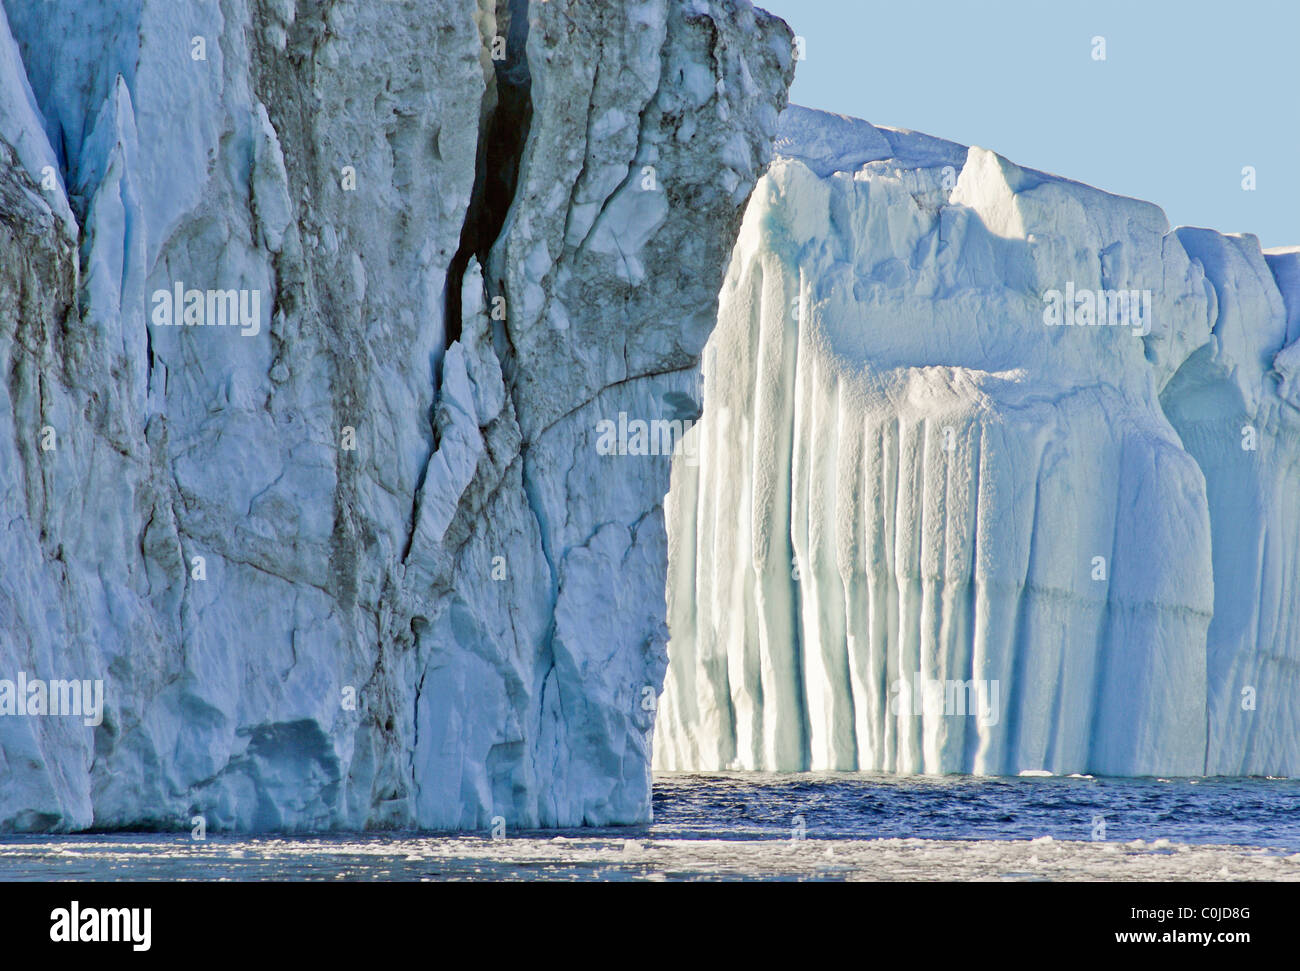 Iceberg on a clear sunny day - Stock Image